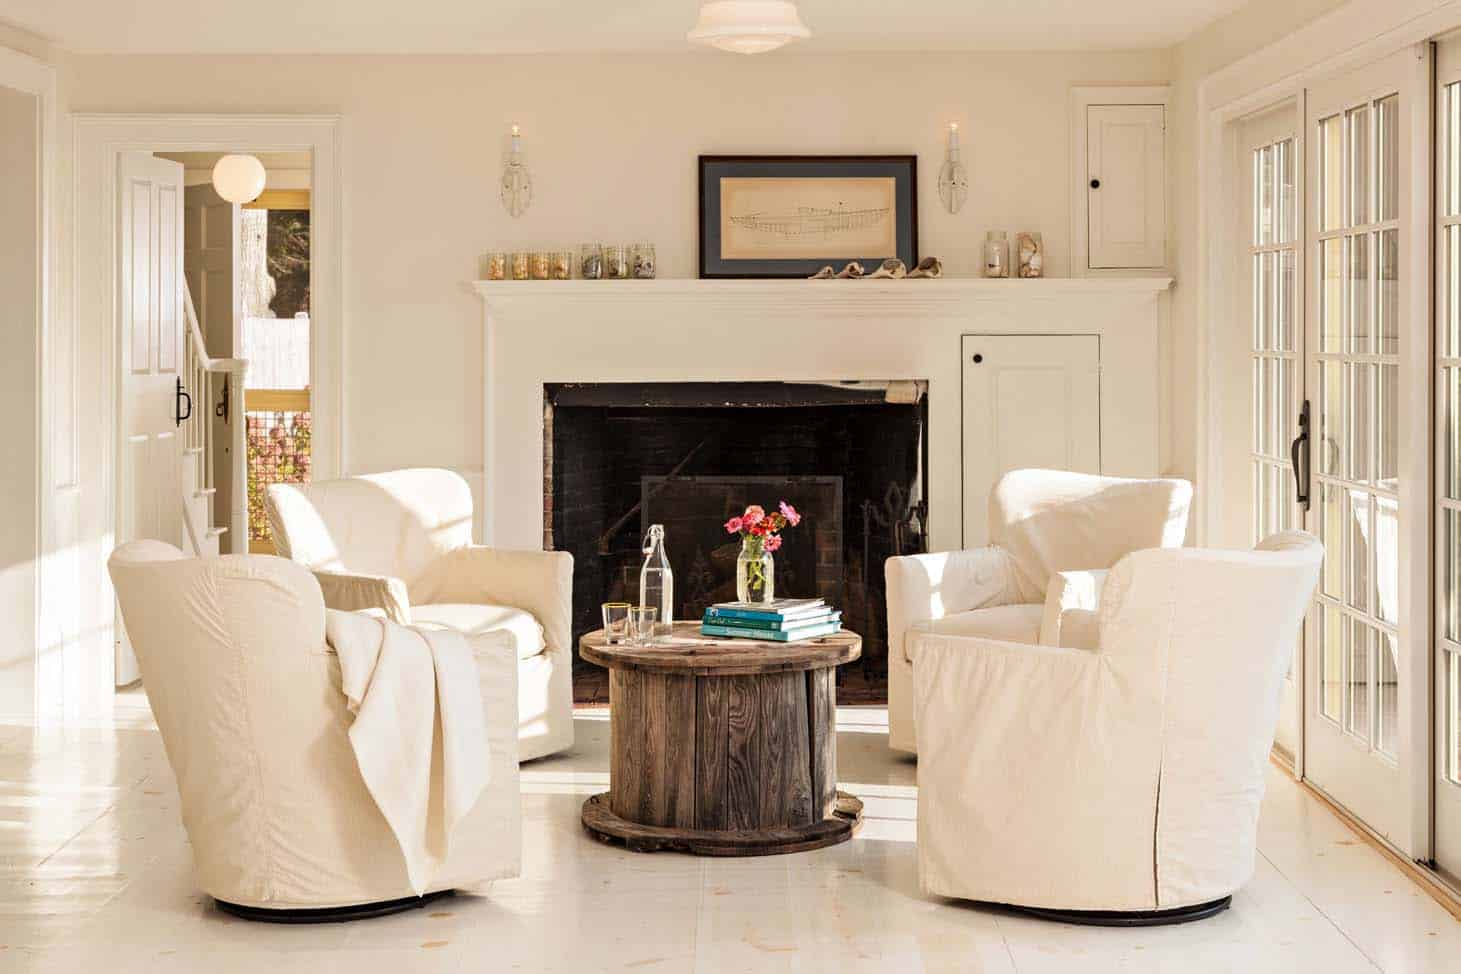 cape cod style living room design white furniture cottage radiates with pops of sunshine yellow interiors 08 1 kindesign jpg